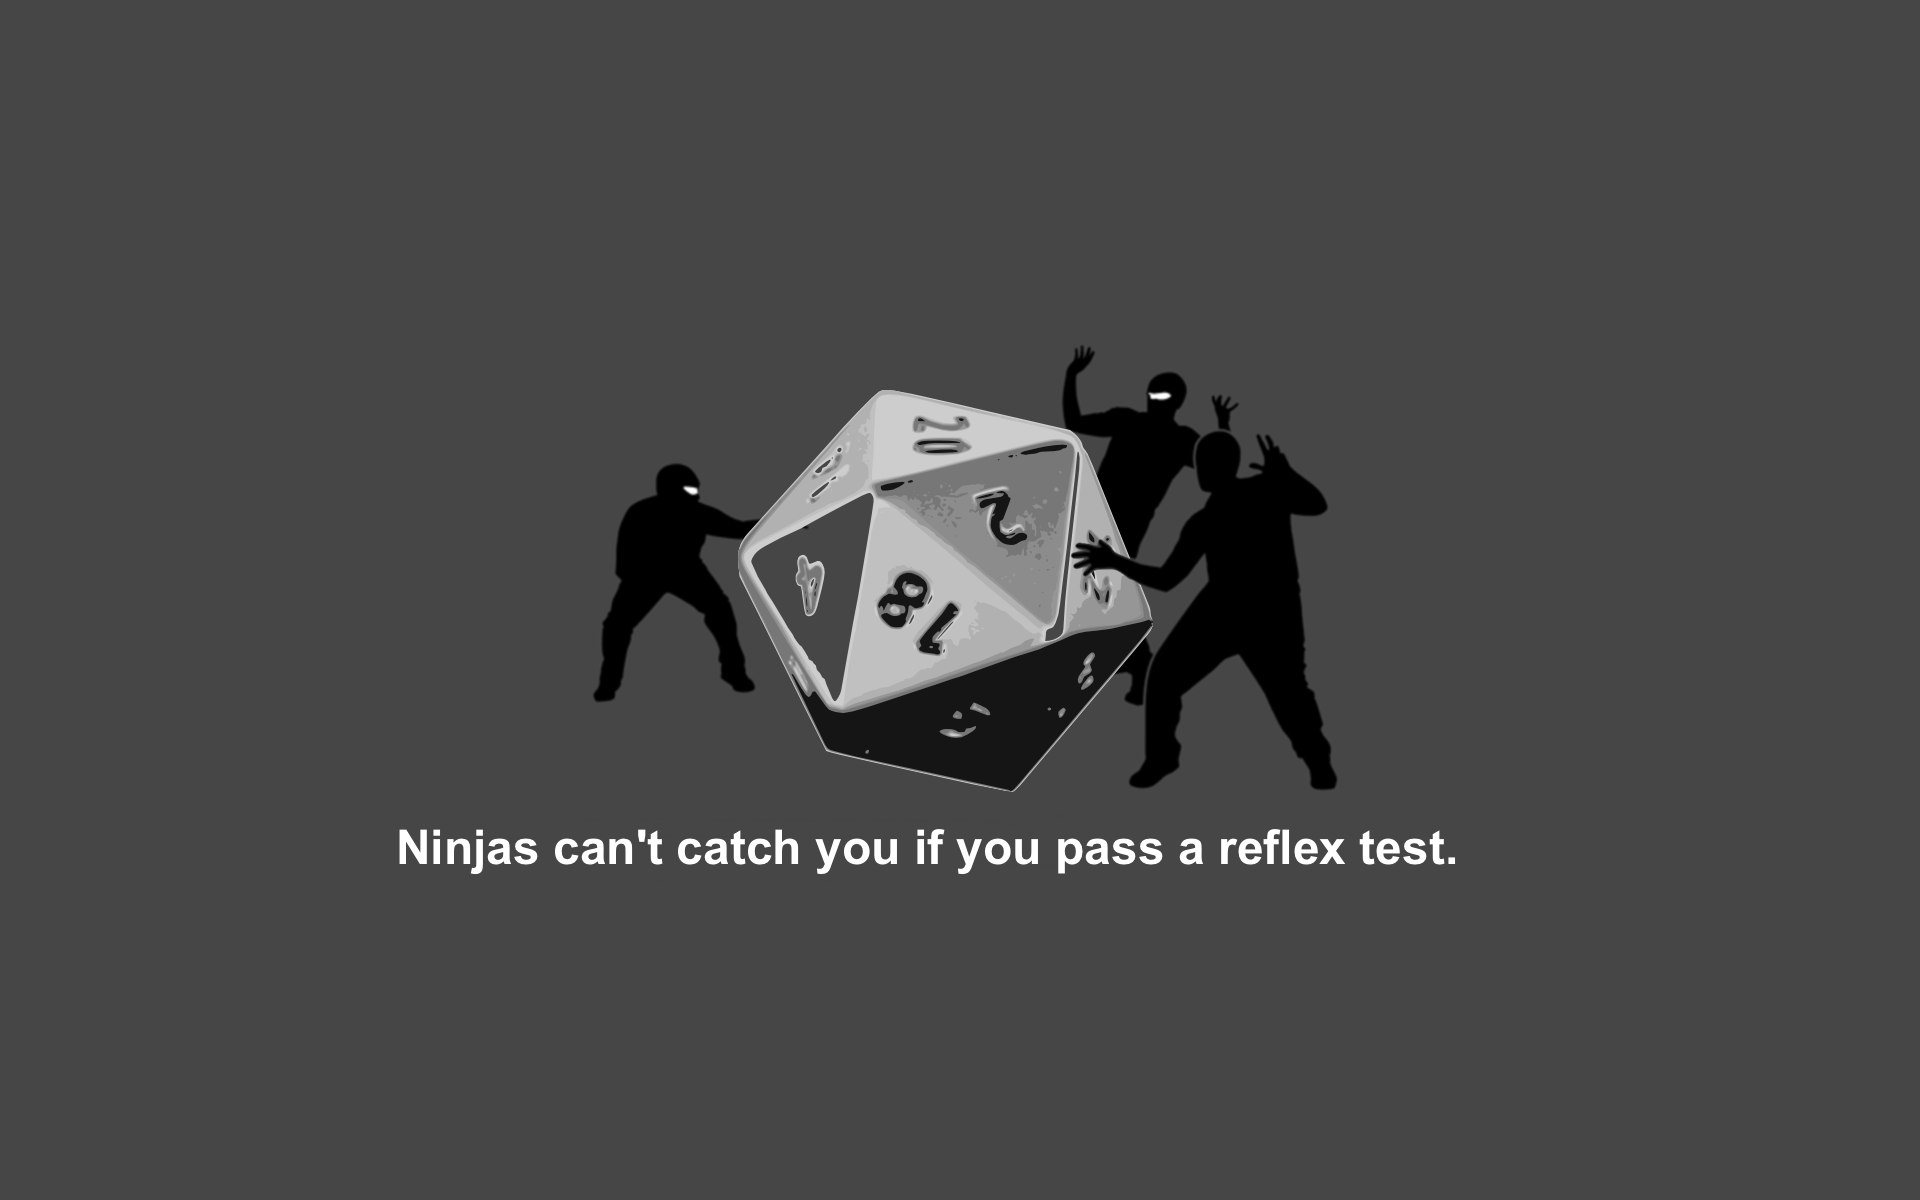 Ninjas Dice Ninjas Cant Catch You If Dungeons And Dragons